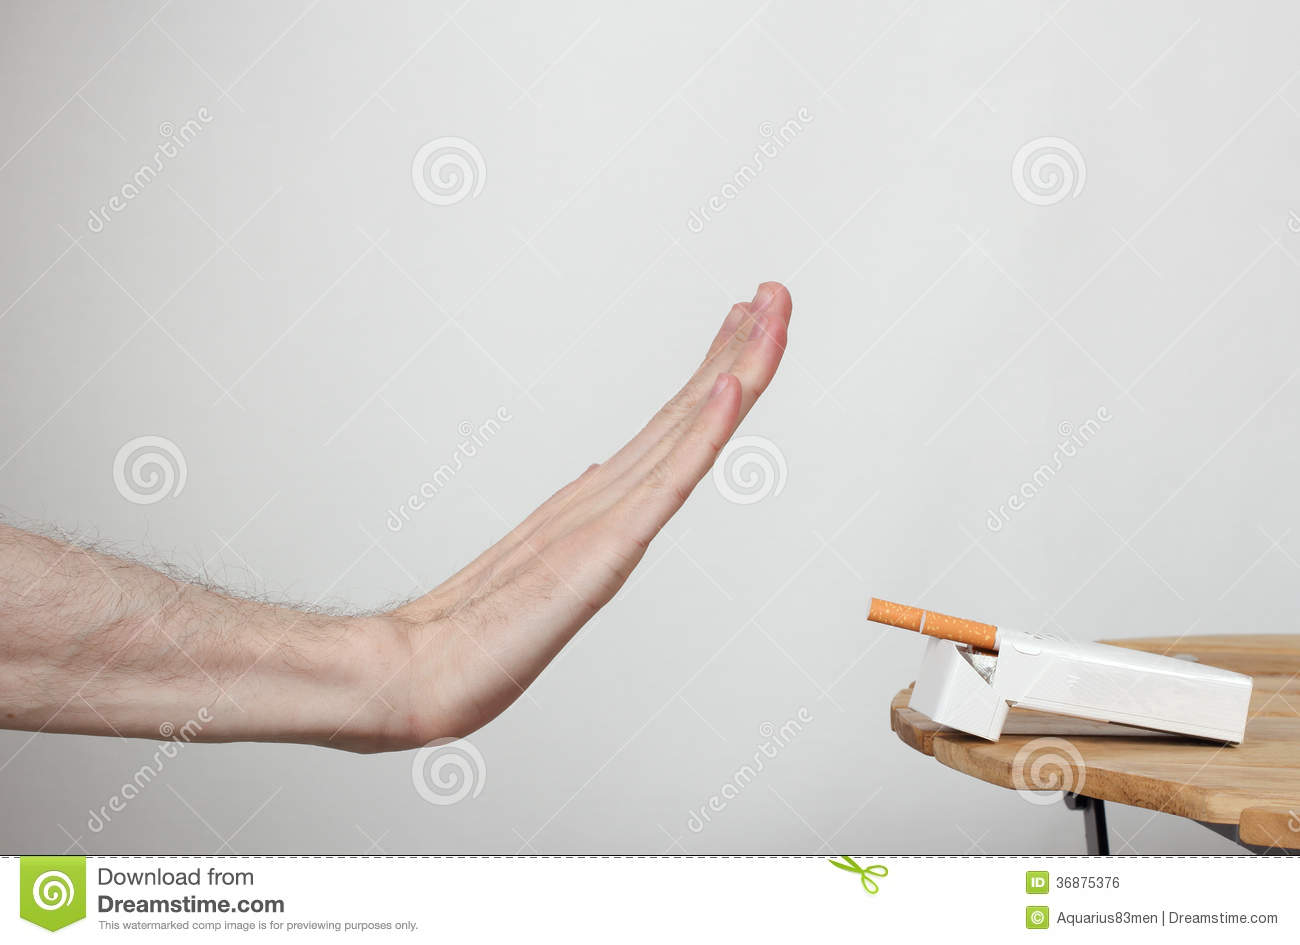 smoking is harmful for health essay the harmful effects of essays on wealth